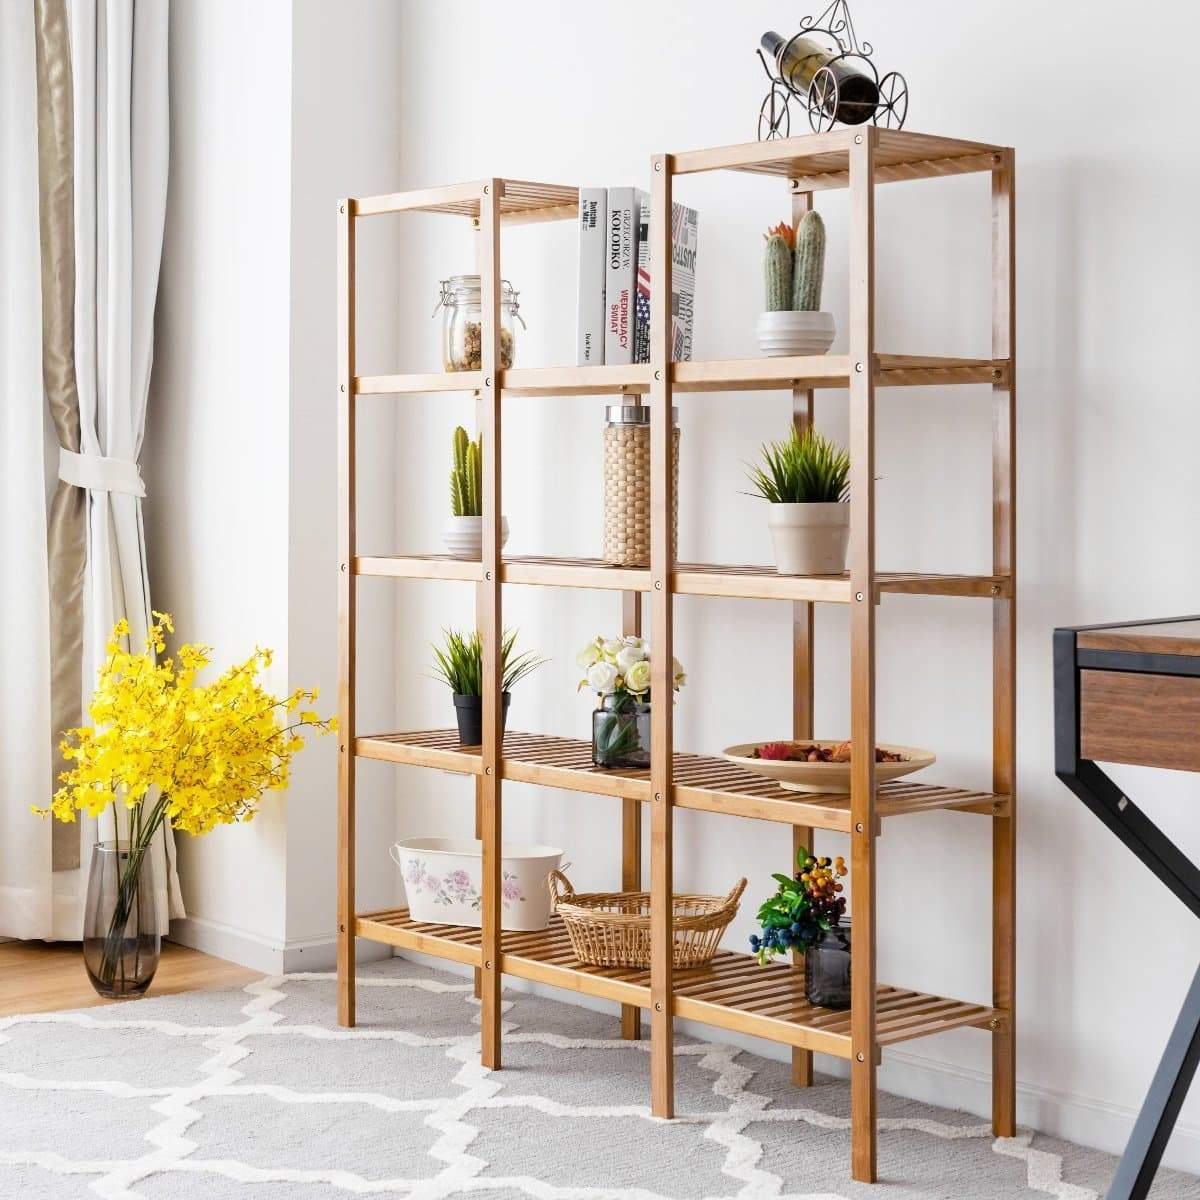 Latest costway bamboo utility shelf bathroom rack plant display stand 5 tier storage organizer rack cube w several cell closet storage cabinet 12 pots